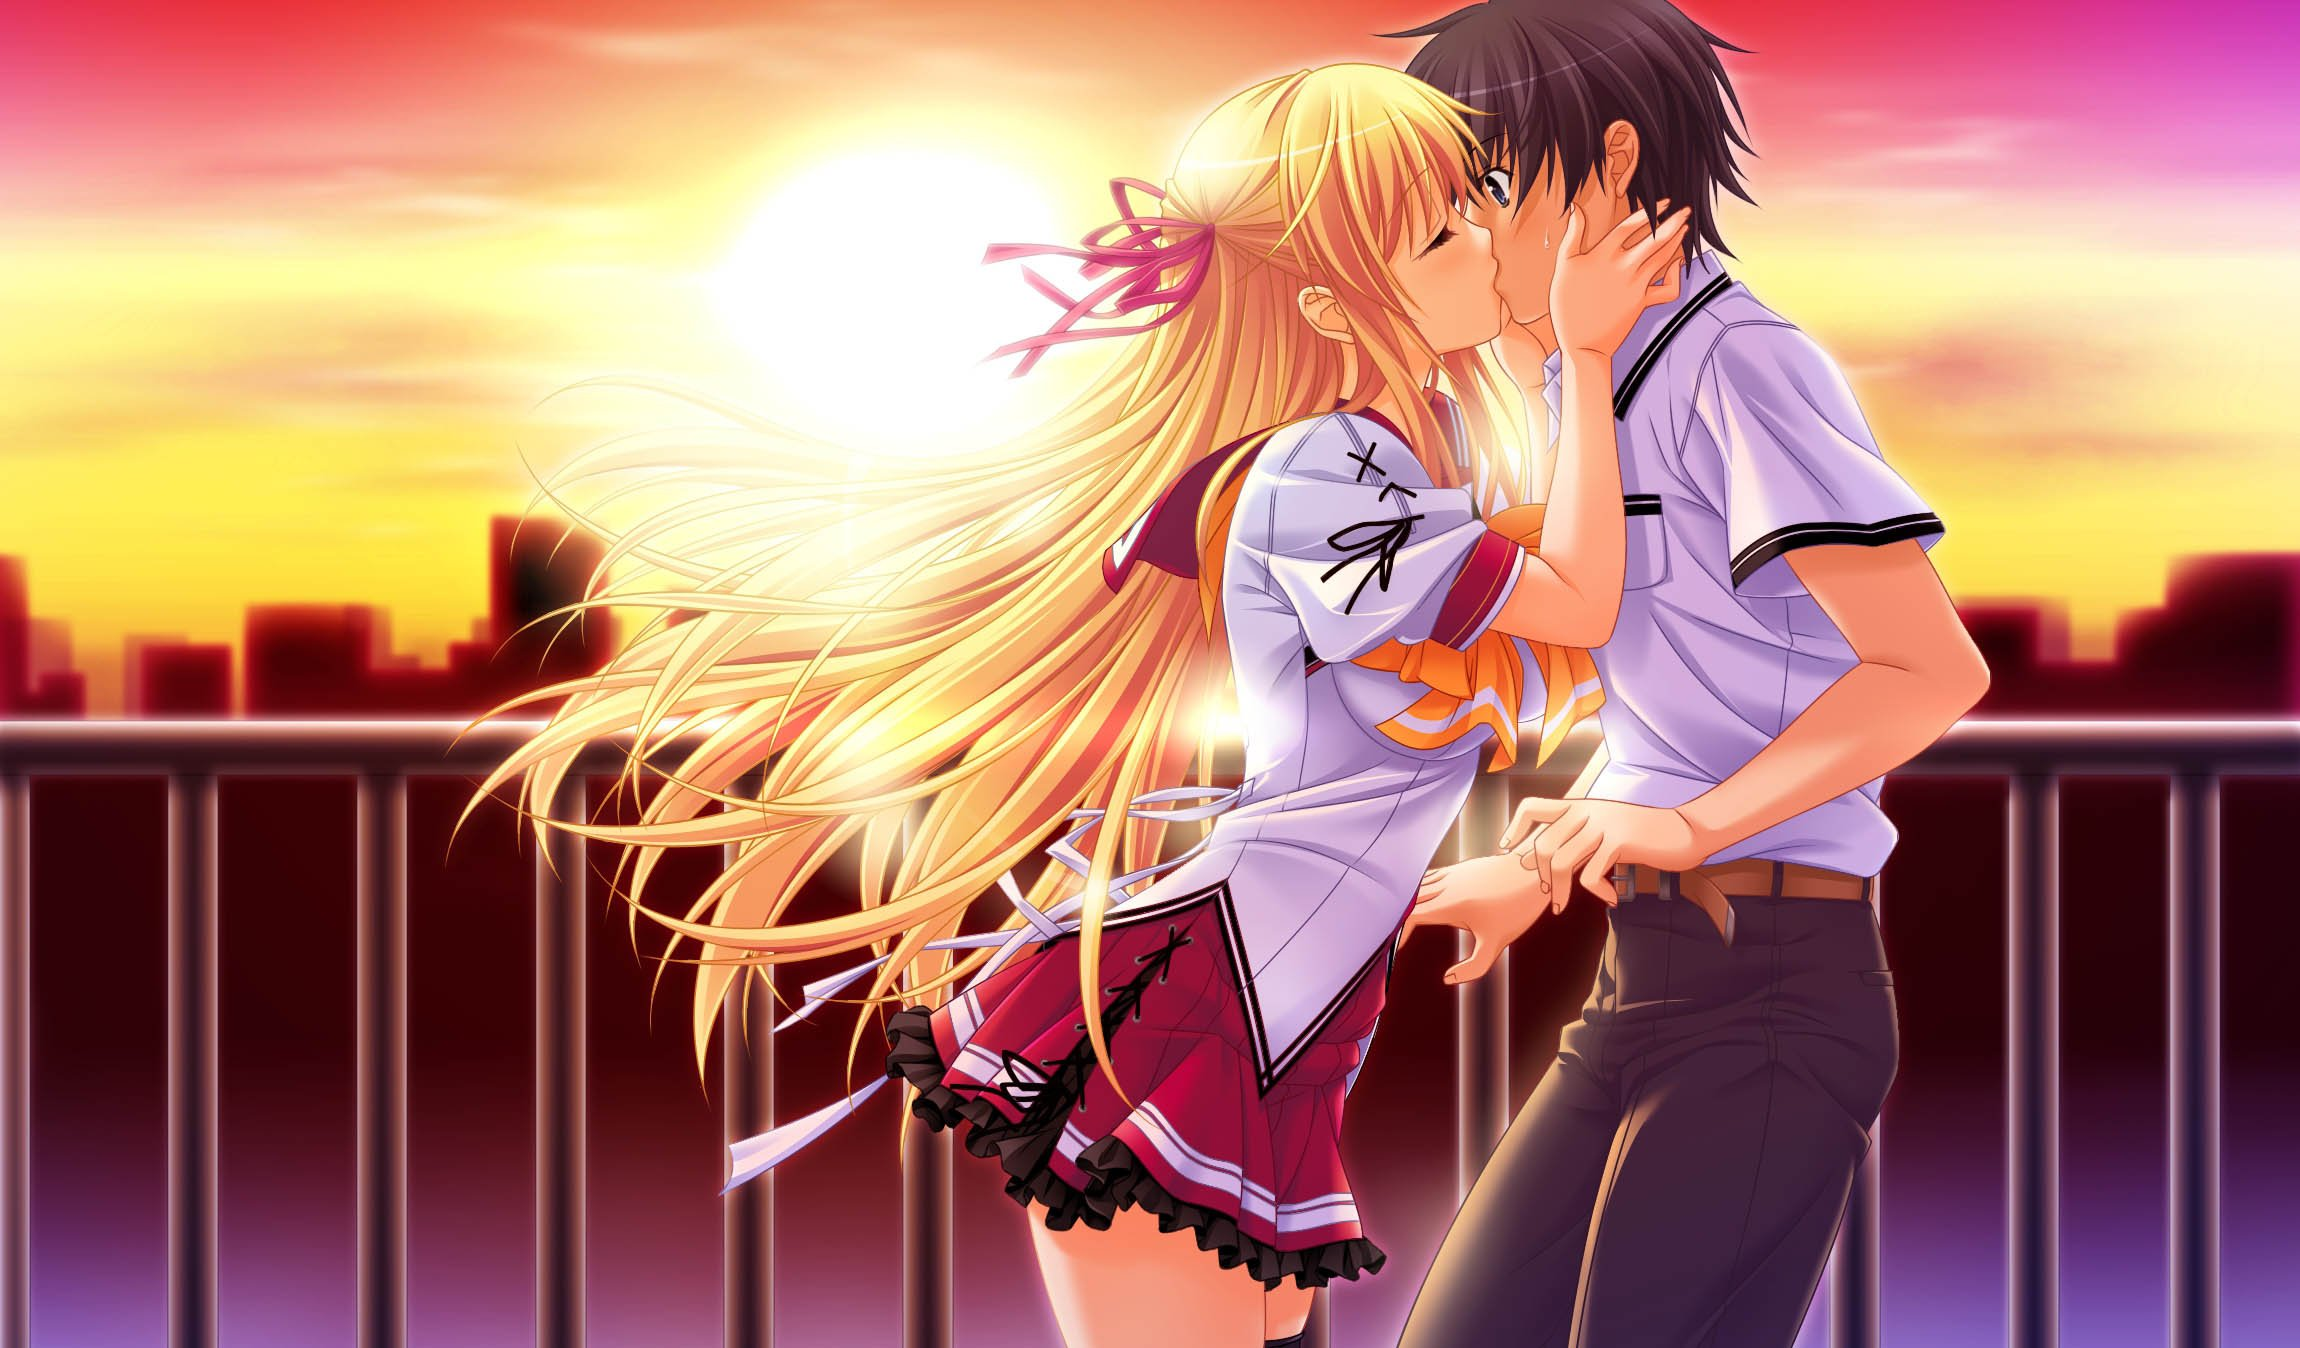 Anime kissing wallpaper wallpapersafari - Anime girl full hd ...